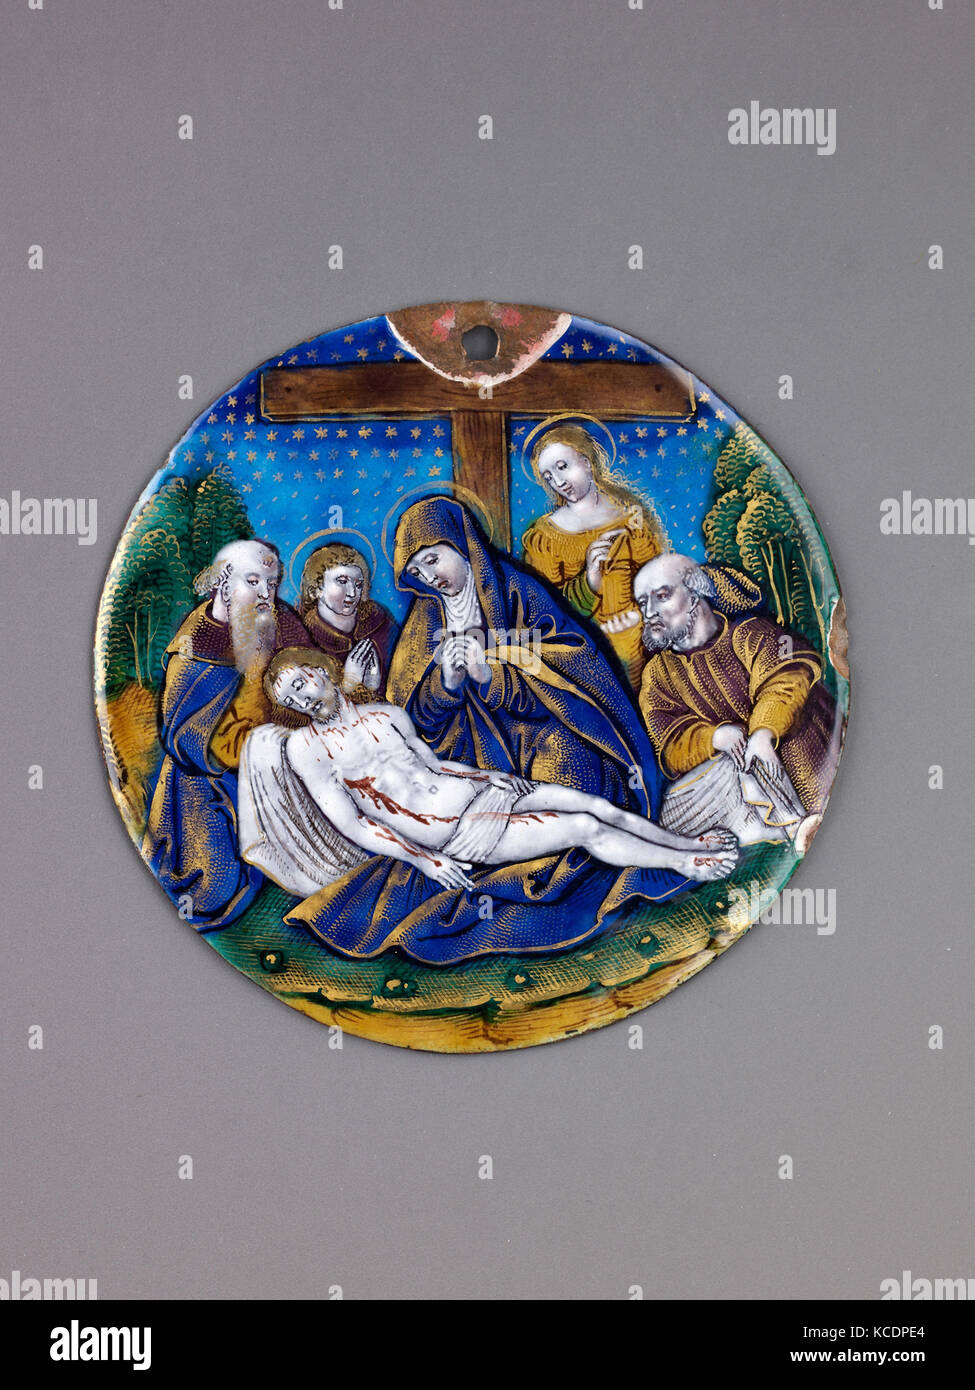 Lamentation, probably late 19th or early 20th century - Stock Image